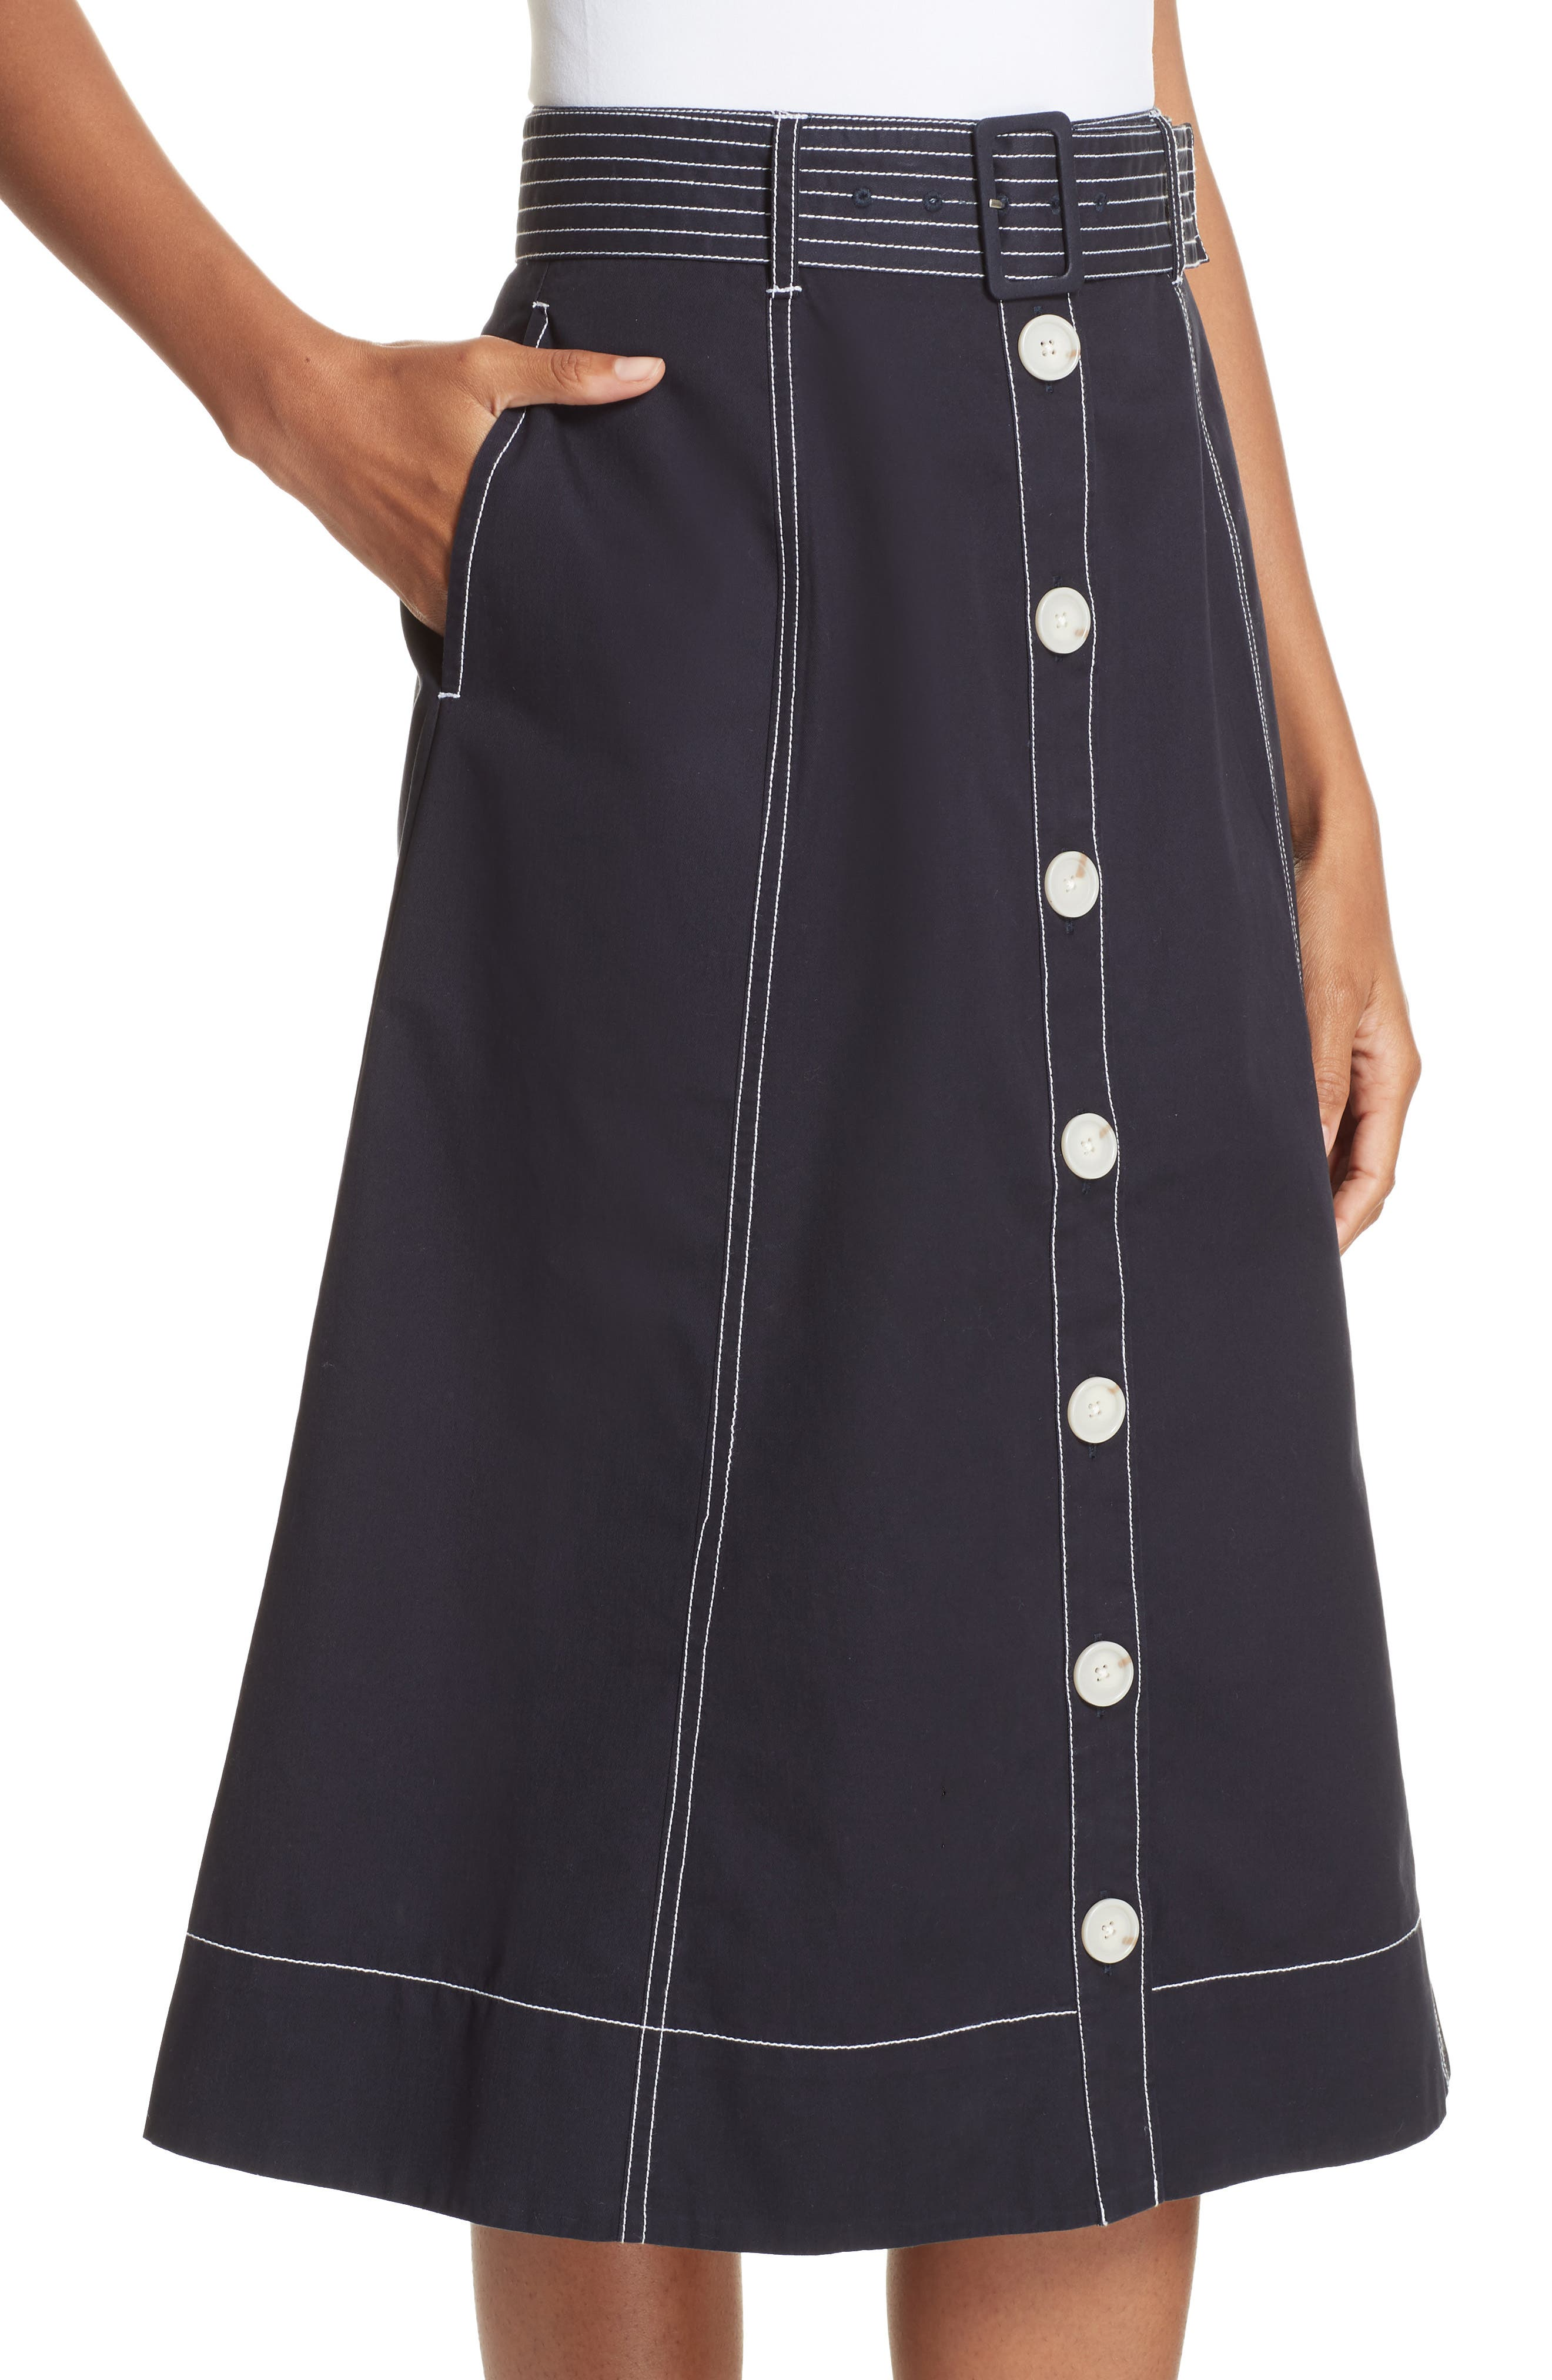 Mayaly Belted Cotton Skirt,                             Alternate thumbnail 4, color,                             410